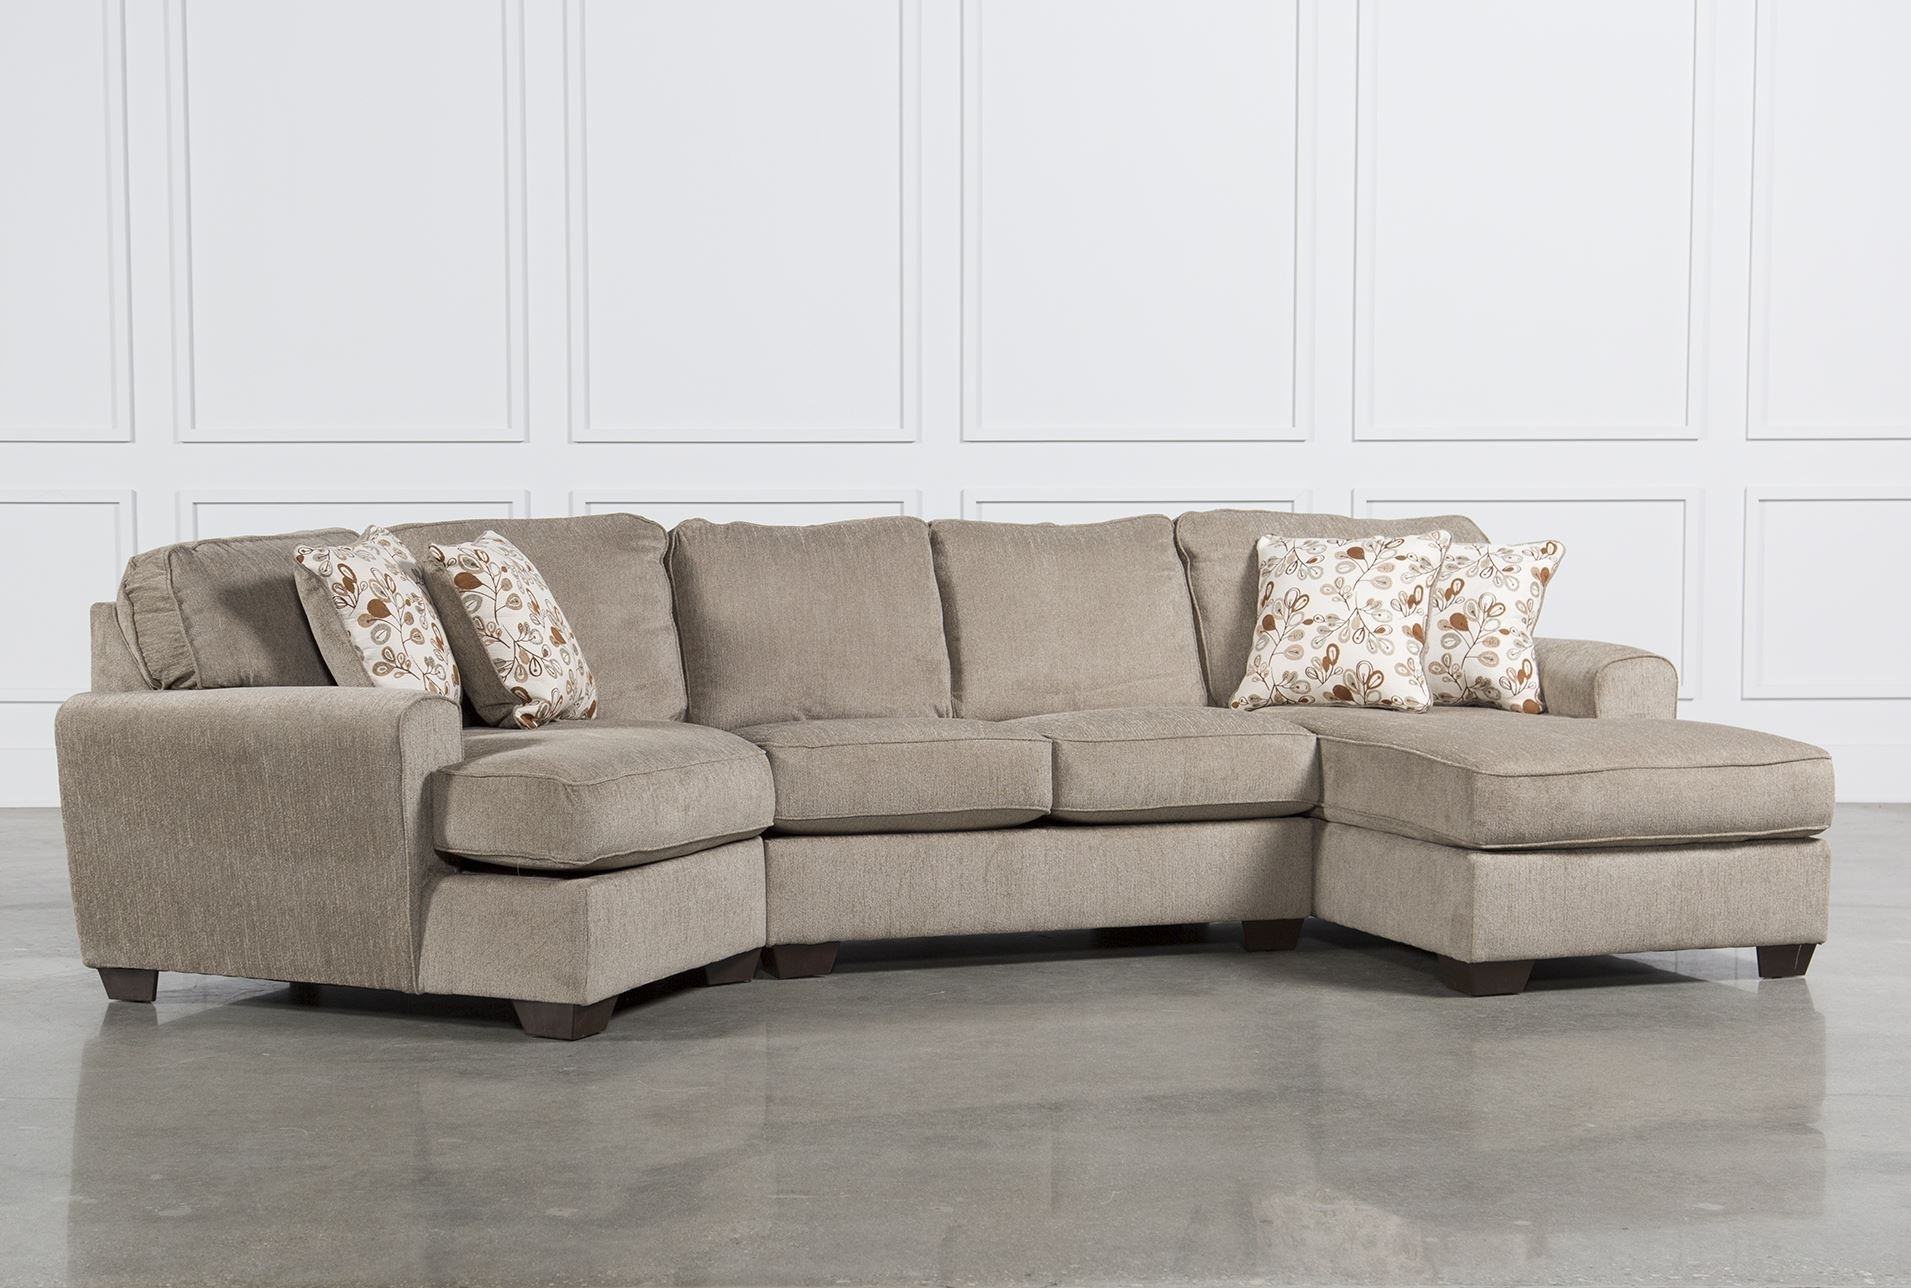 Awesome Sectional Sofa With Cuddler Chaise – Buildsimplehome Inside Haven 3 Piece Sectionals (View 23 of 25)